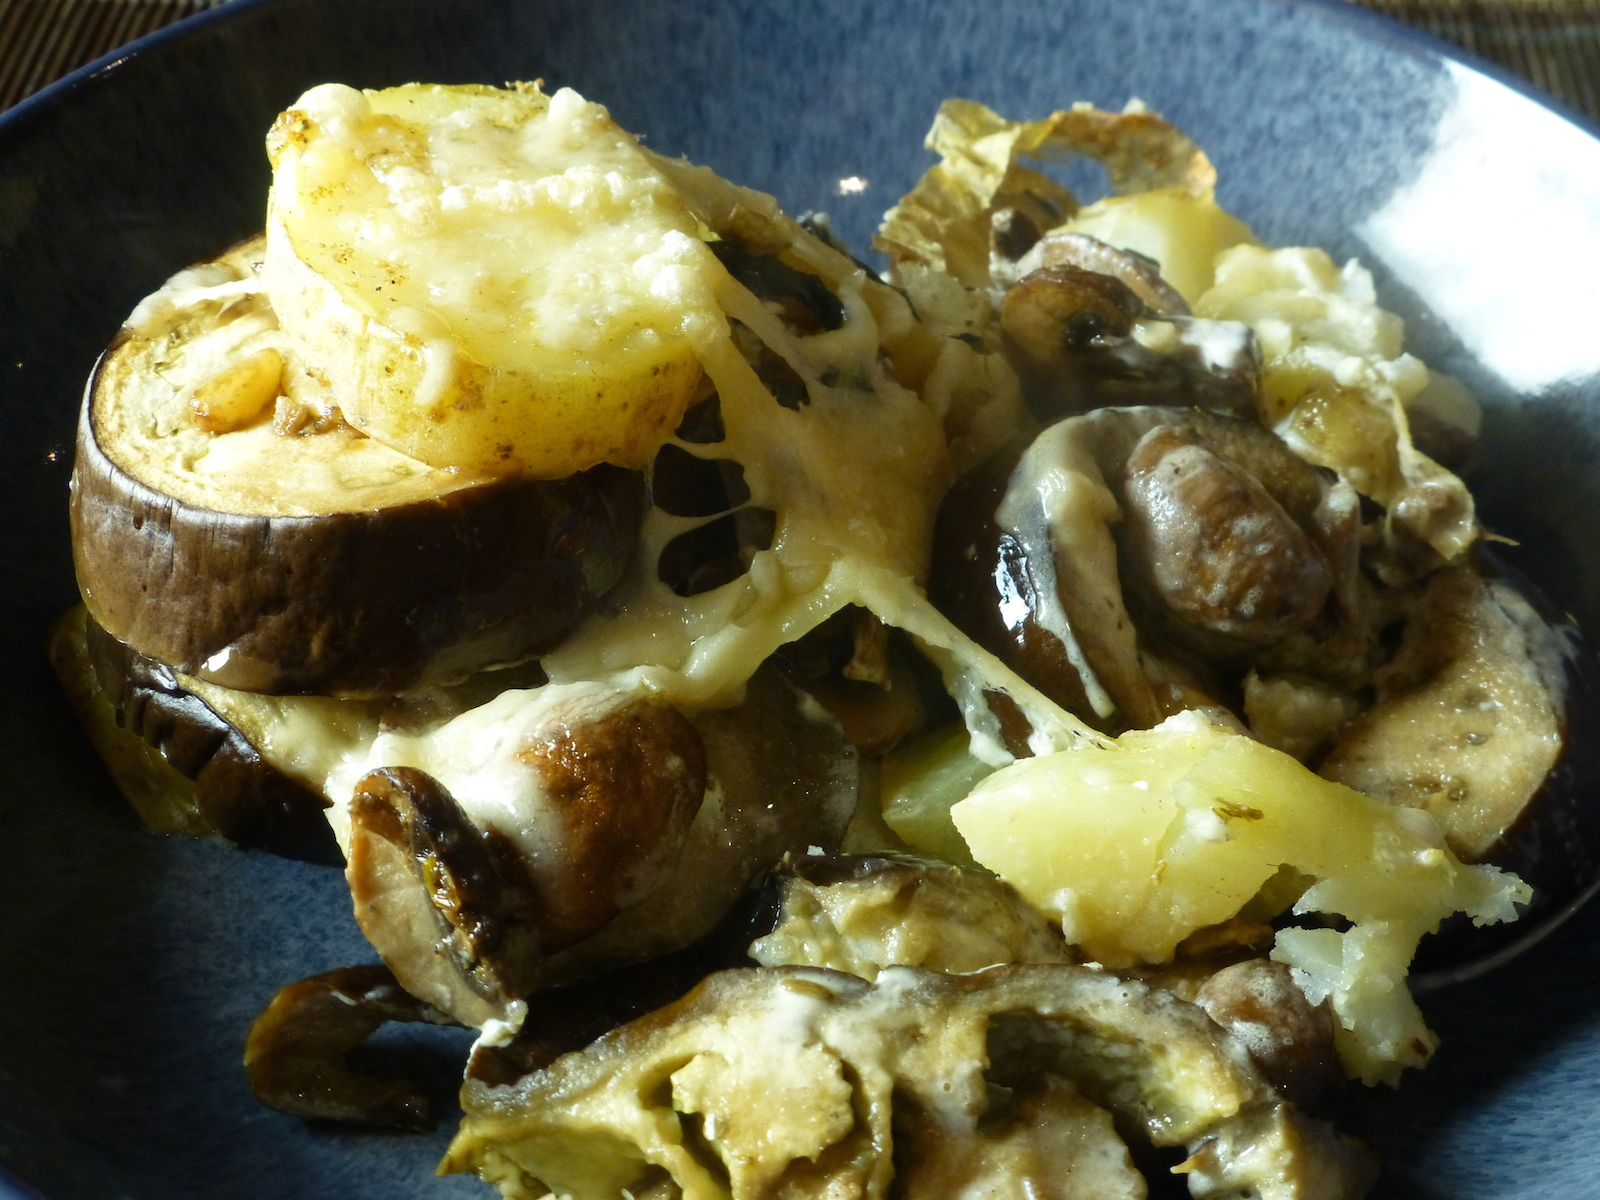 Festive bake with aubergines, mushrooms and cream